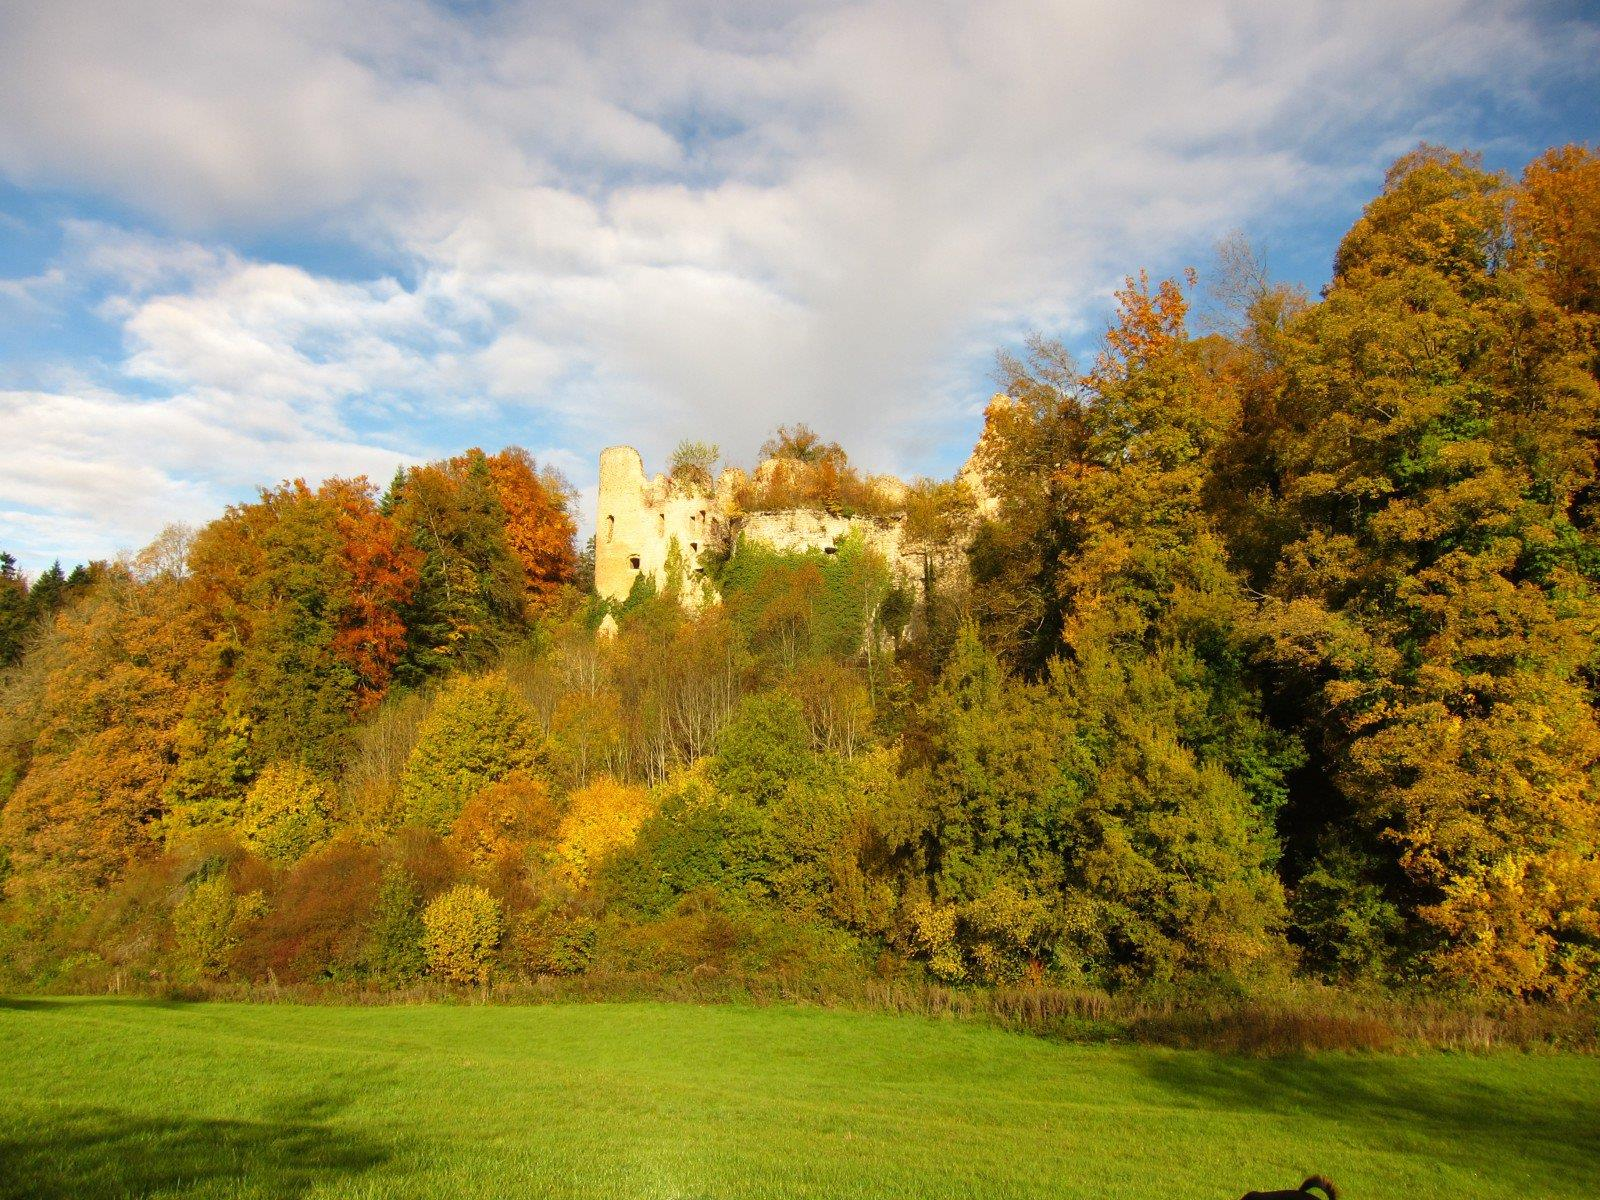 Hike: Oberlarg and Morimont Castle